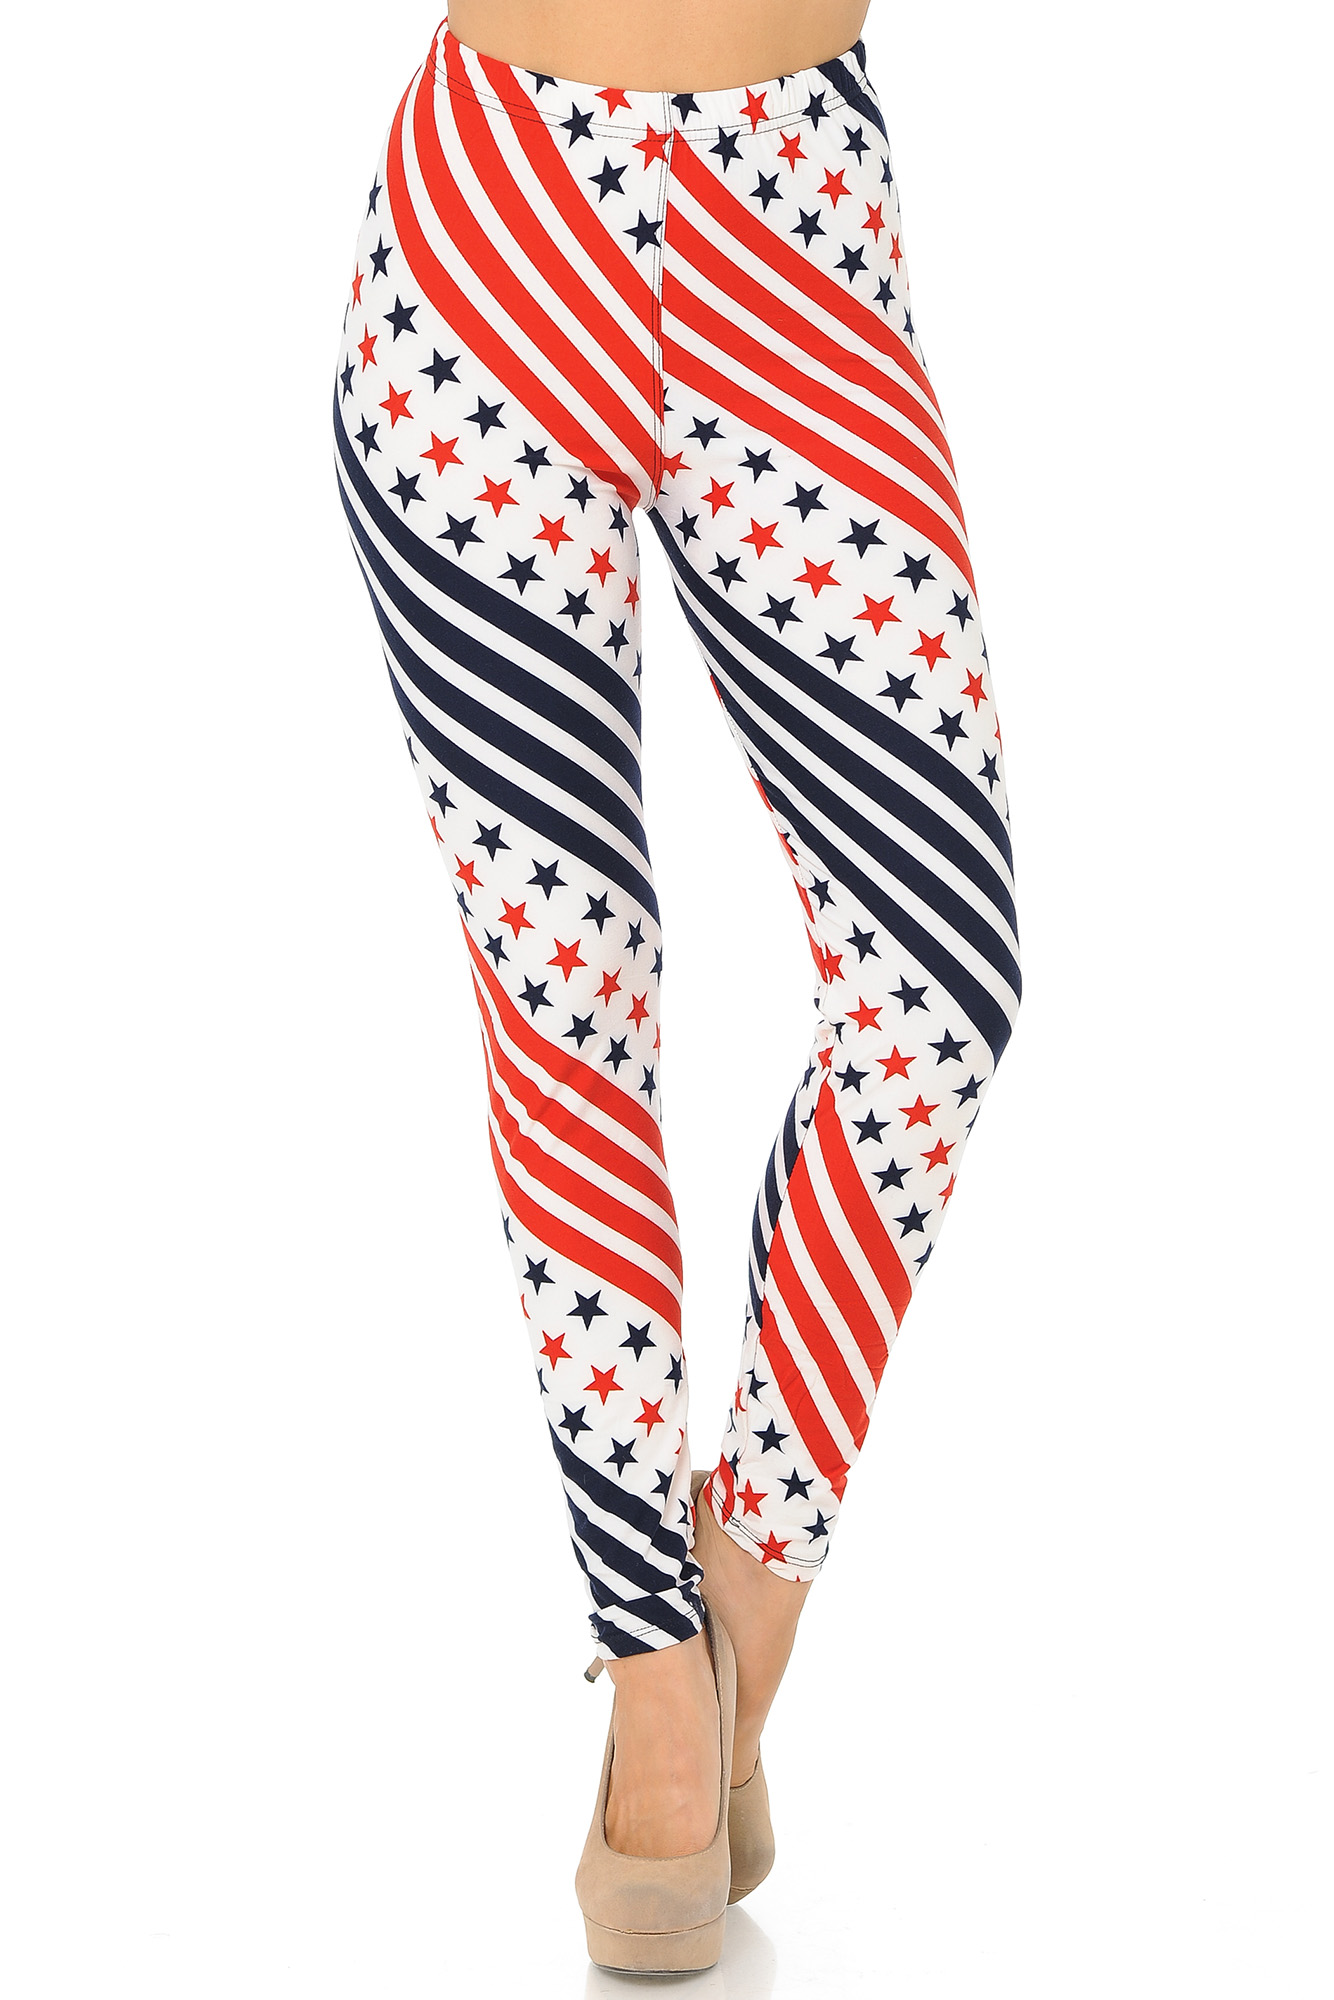 a47e26fe882bb4 Buttery Soft Twirling Stars and Stripes USA Flag Plus Size Leggings ...